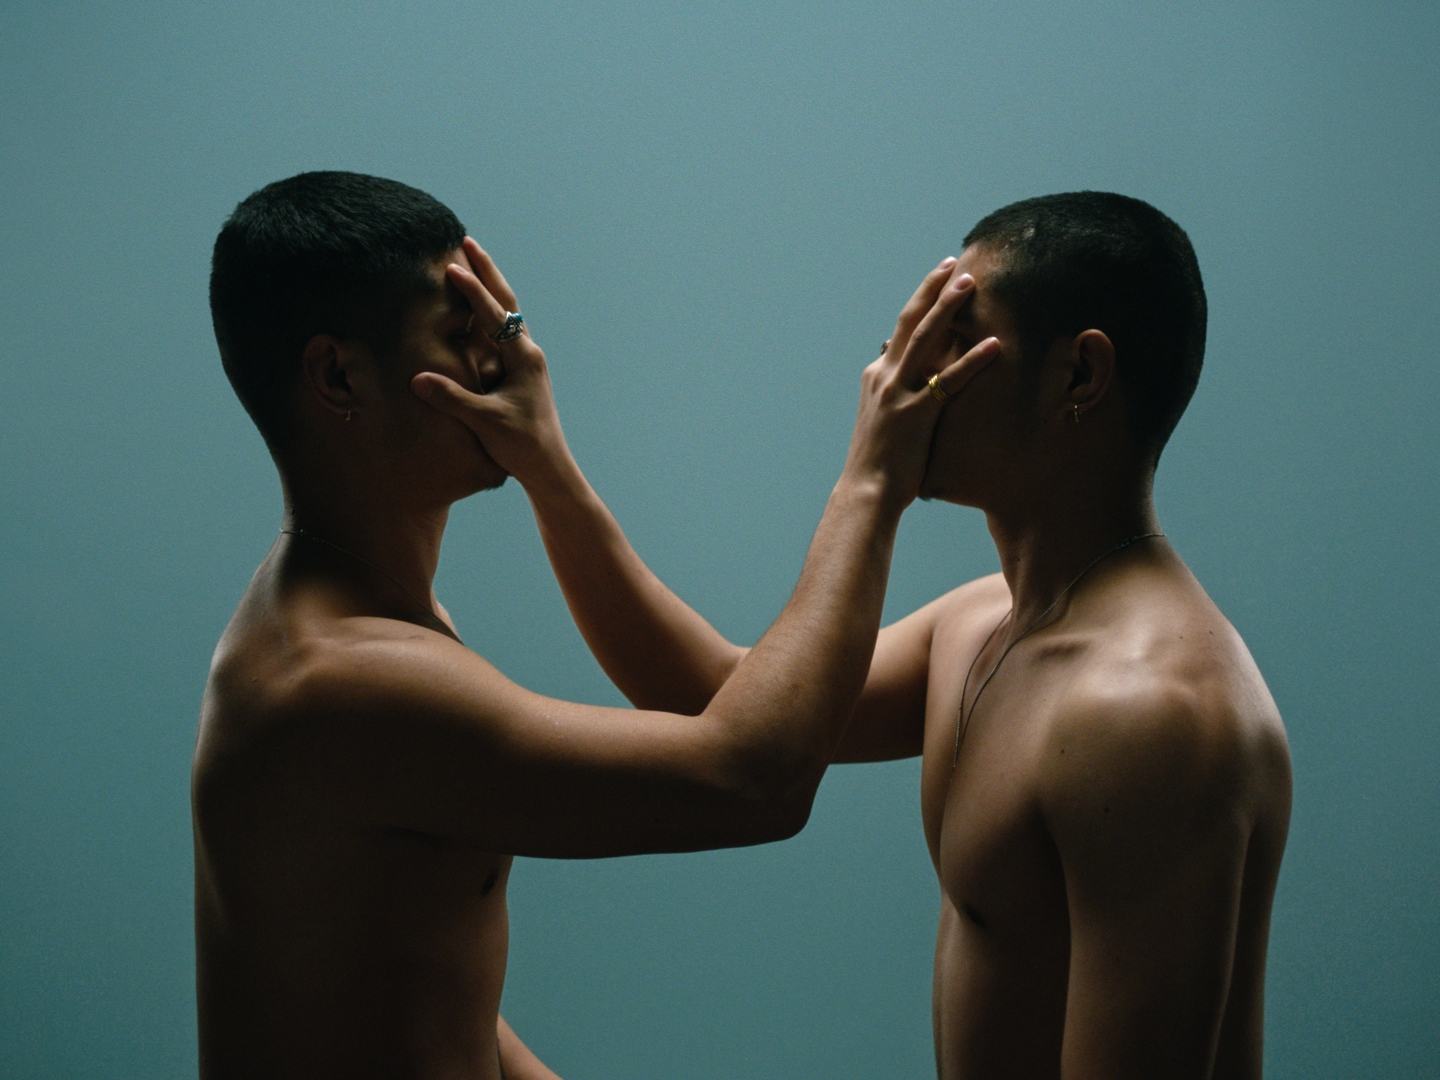 YOUNG_FATHERS_1.1.1.jpg